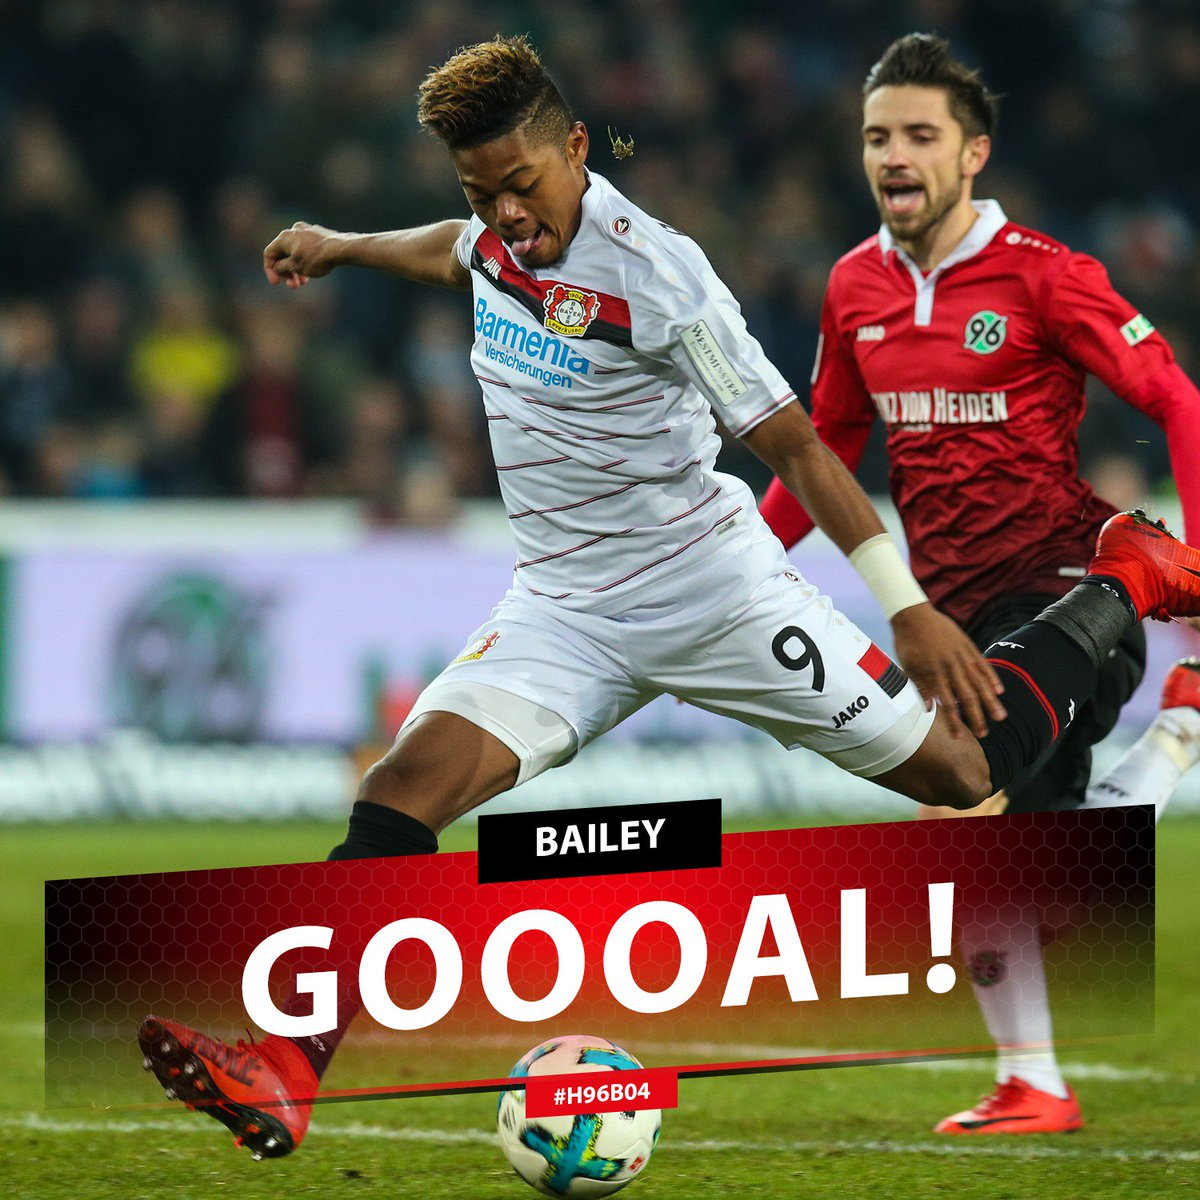 RT @bayer04_en: 67' GOOOOOAAAAL!!!!  It's a brace for @leonbailey!!! YESSS!!  #H96B04 | 3:4 https://t.co/Q6BOvtyiEh